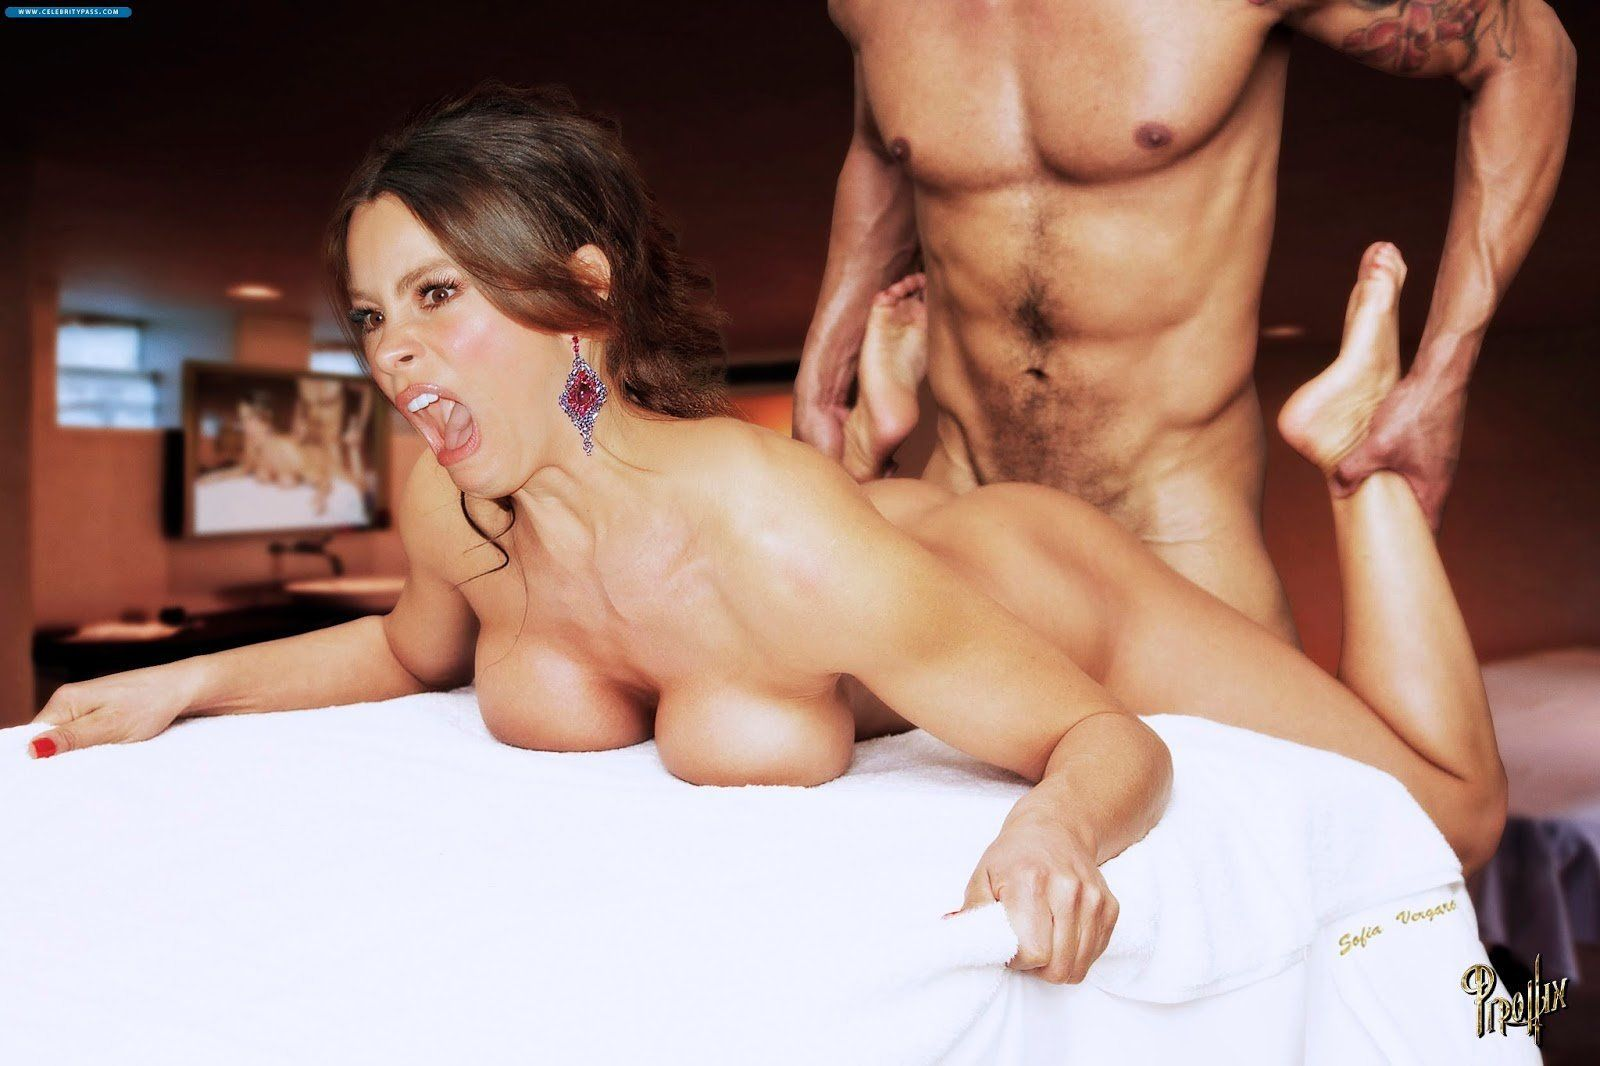 Mouth full even with cum multiple